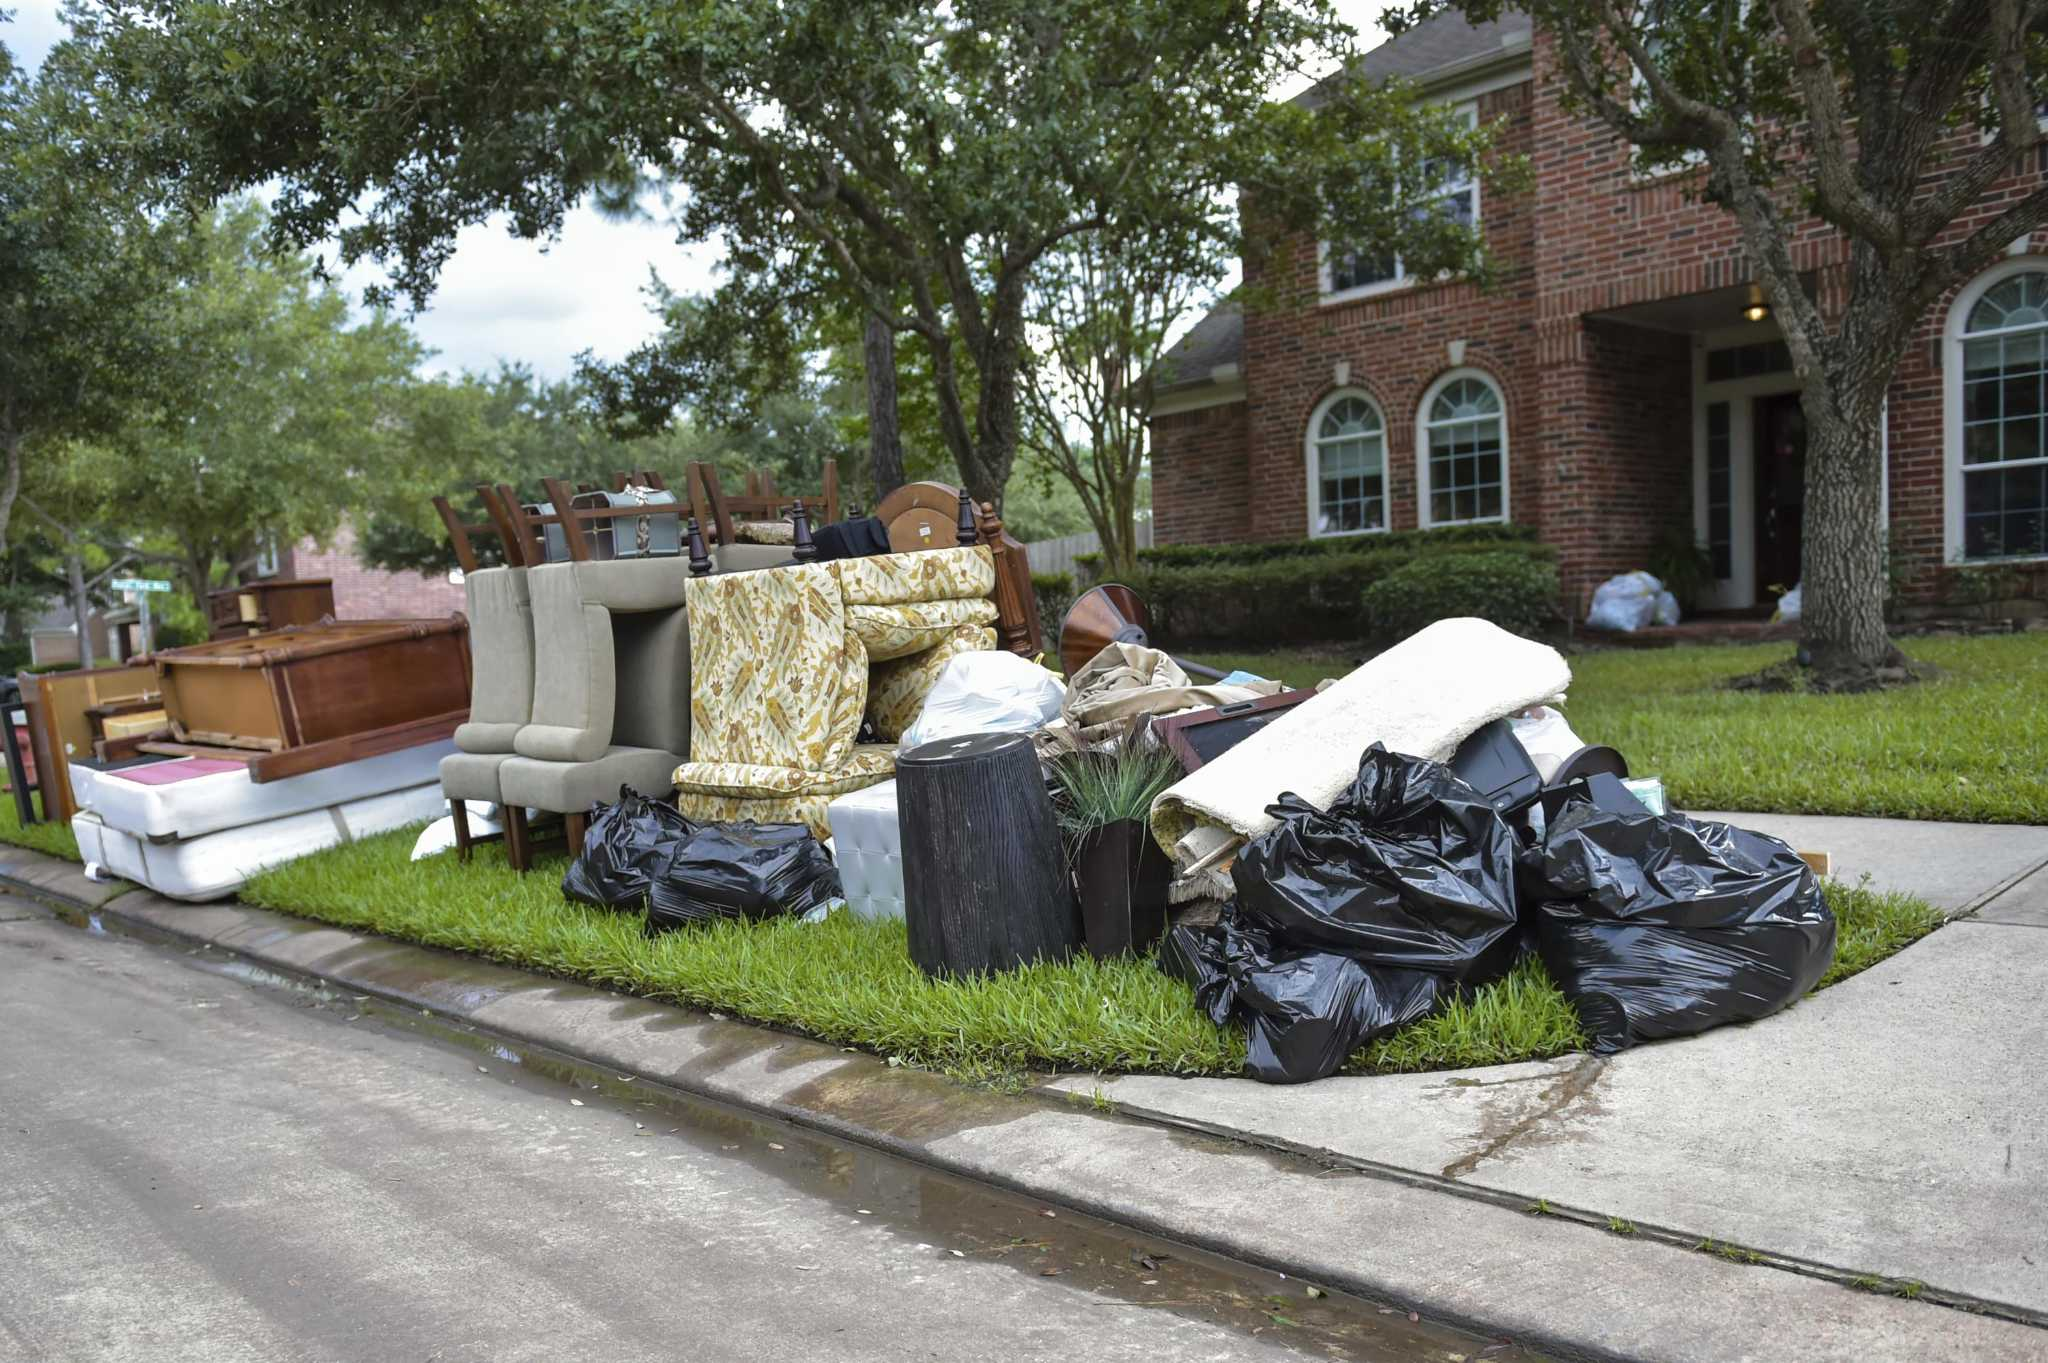 City study finds Houston housing needs $12 billion in further aid